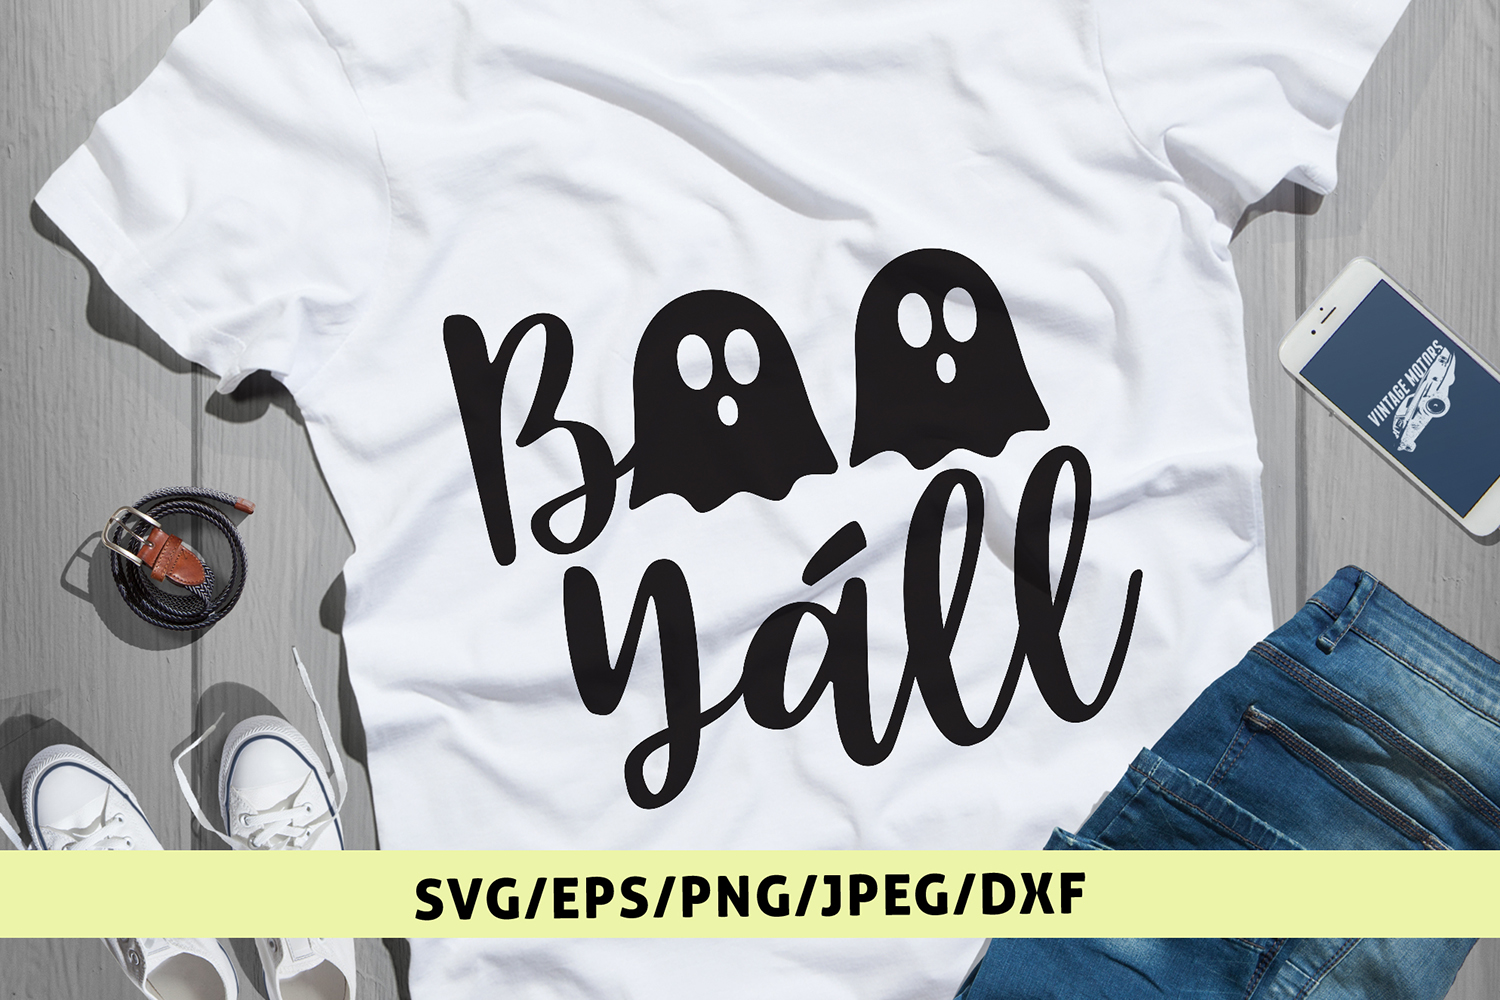 Boo Yall - Halloween SVG EPS DXF PNG Cutting Files example image 1